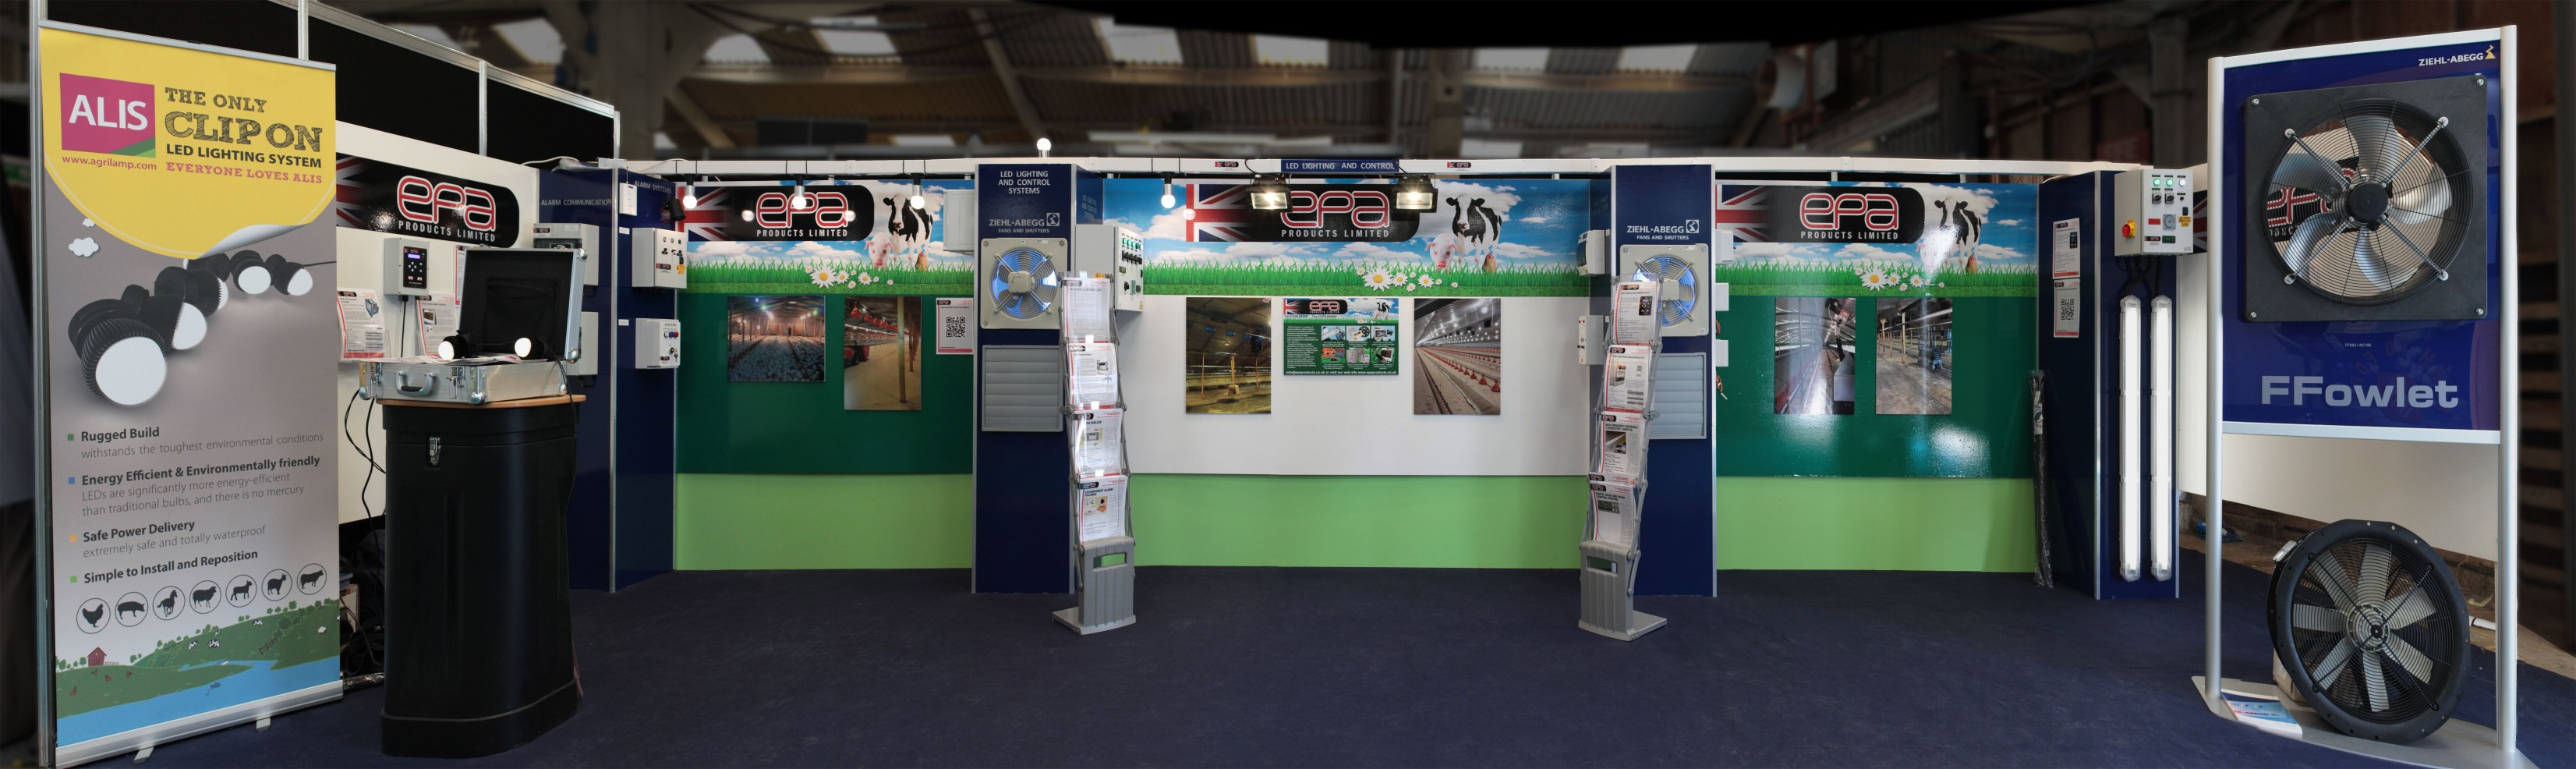 EPA Pig and Poultry Fair Showstand 2014